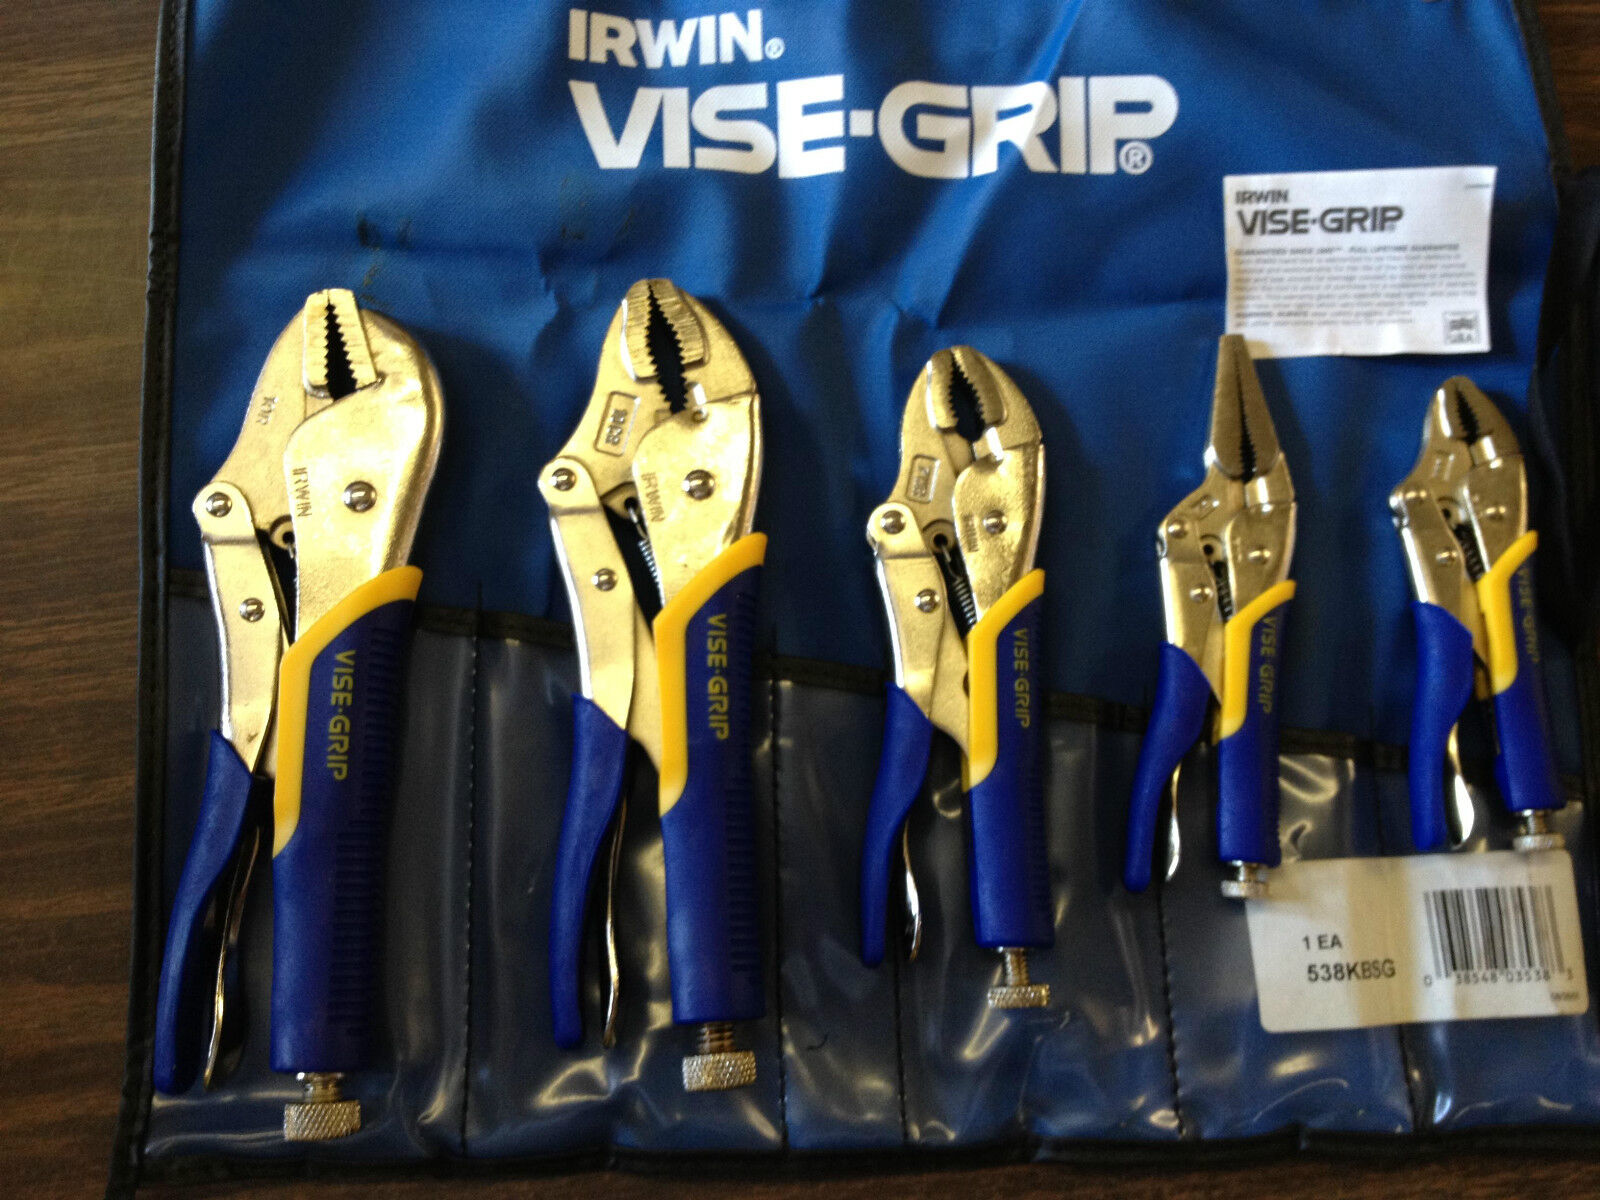 IRWIN 538KBSGThe Original 5pcs  10R, 10CR, 7WR, 5WR and 6LN ,Made in USA S-Grip